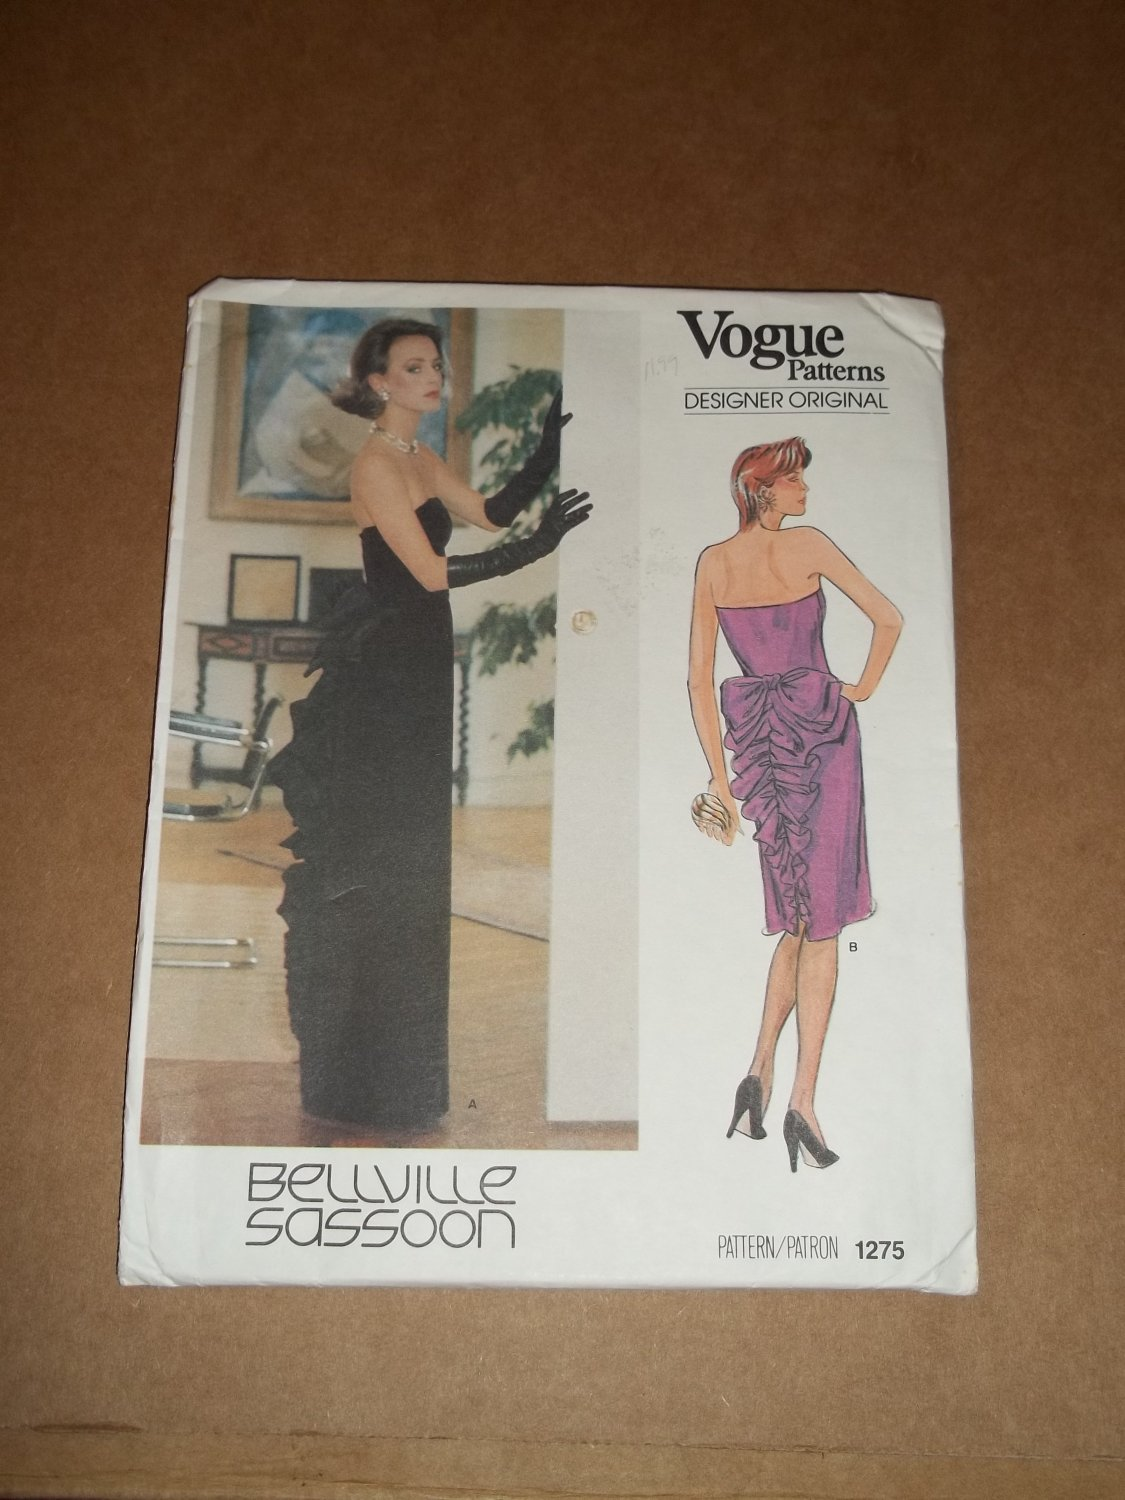 Vogue Designer Original Formal Dress Pattern 1275 Size 12 Uncut